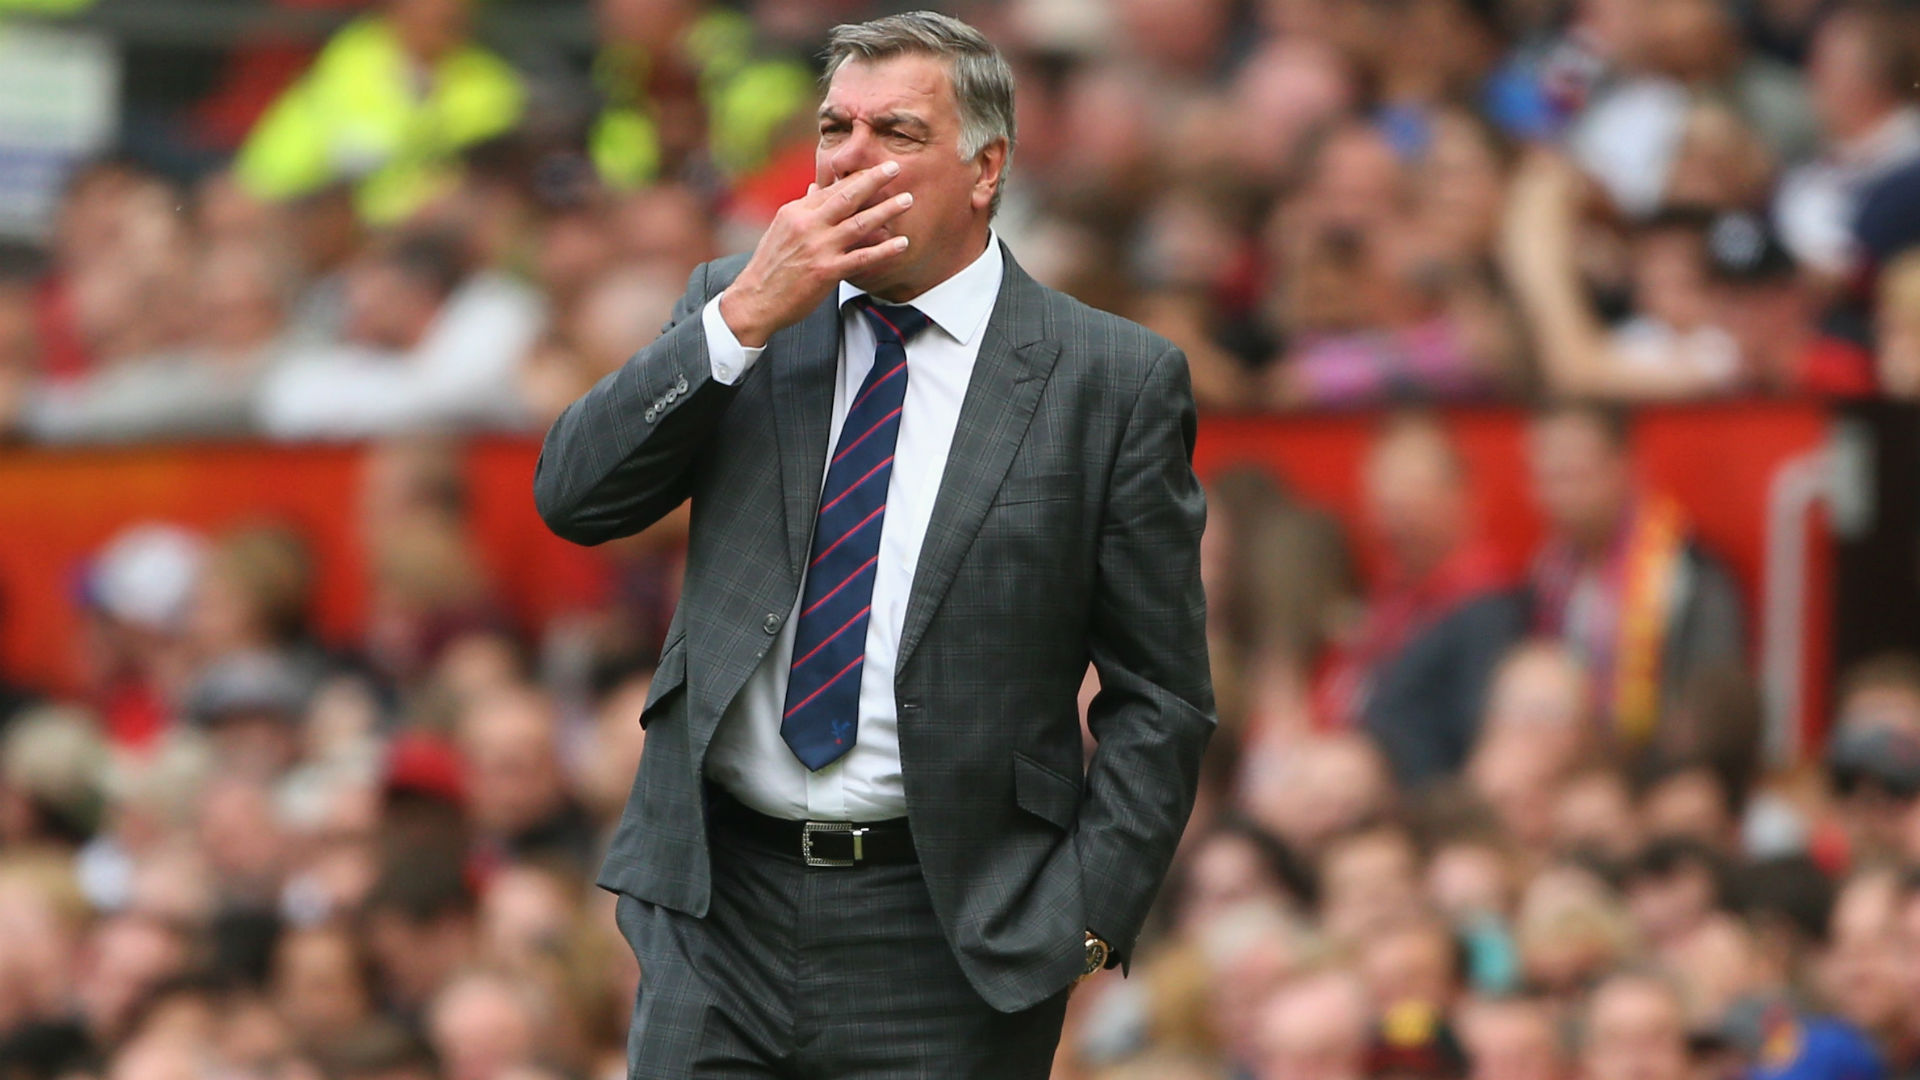 Former England manager Sam Allardyce interested in vacant USMNT job, report says